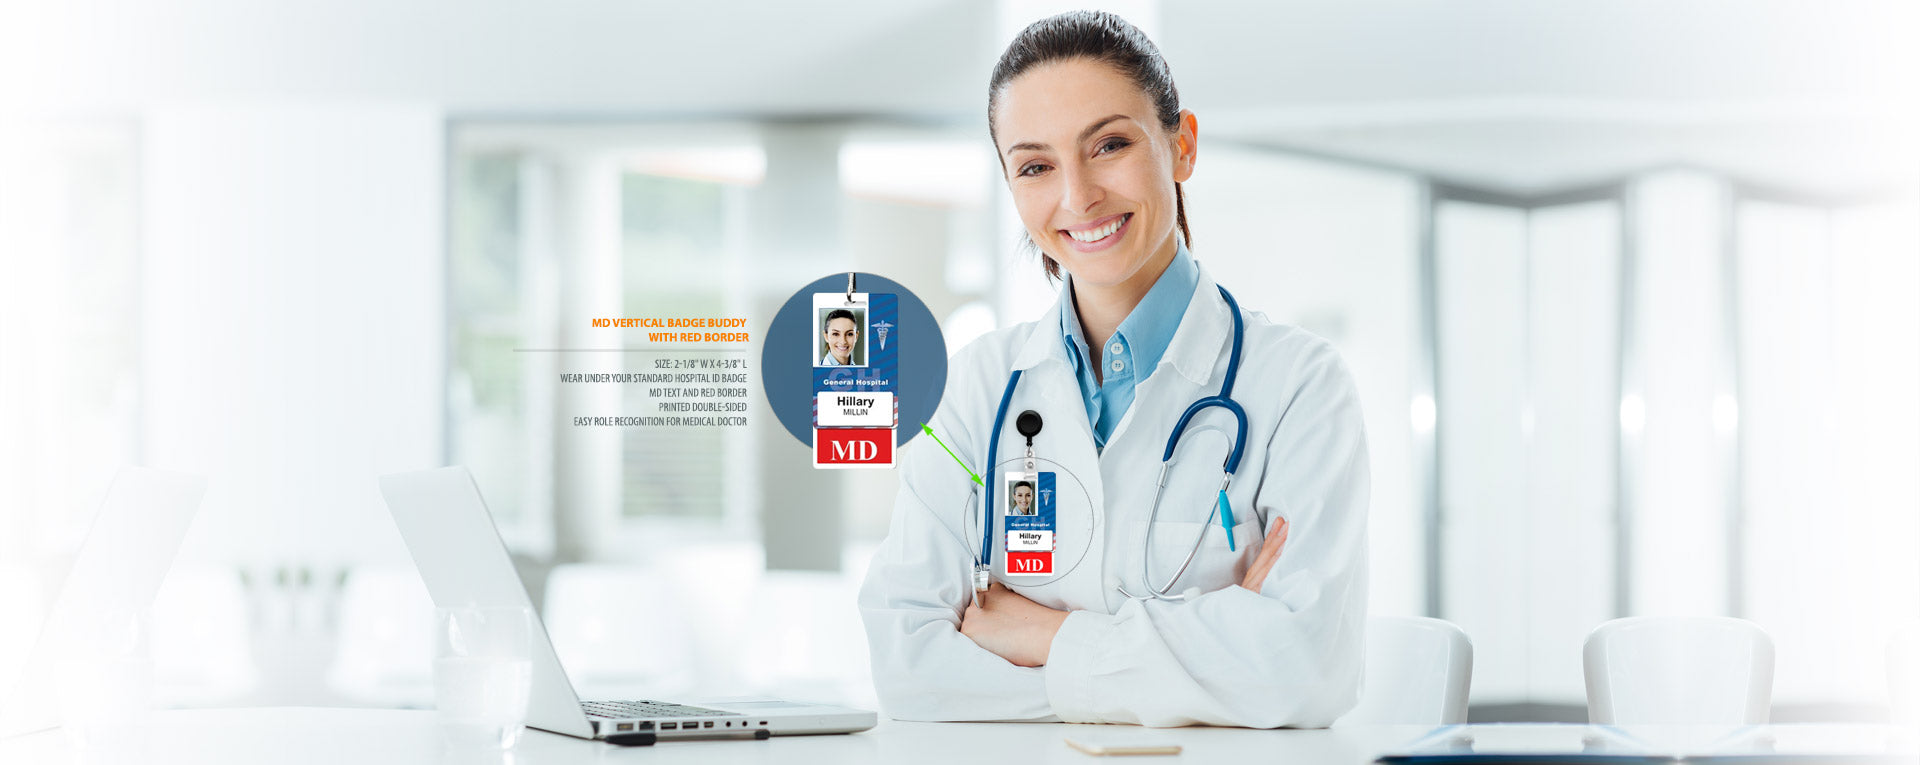 Smiling doctor with arms folded showing Badge Buddy Badge Holders, click to view all badge buddies.